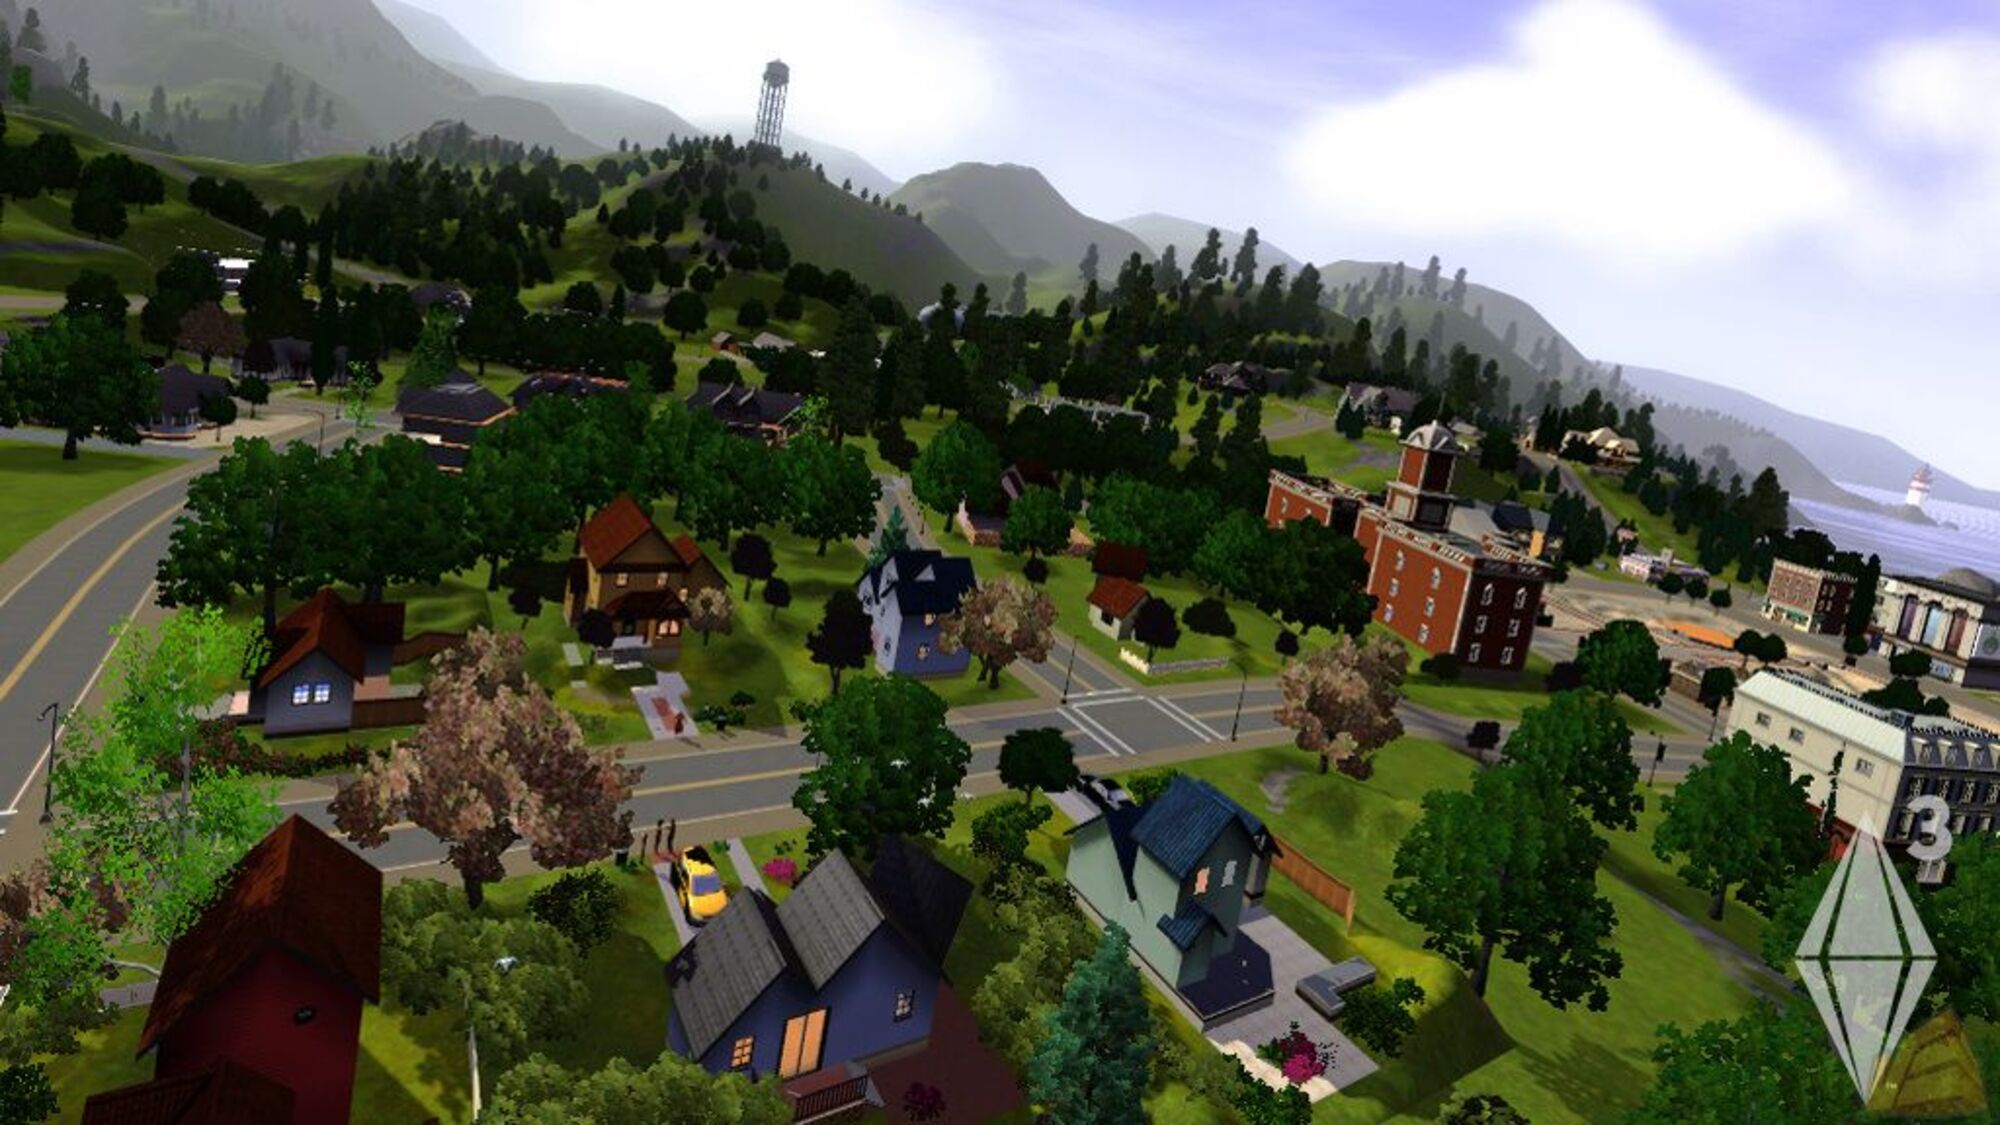 The Sims 3 worlds & list of lots in Excel Database | The Sims fan page